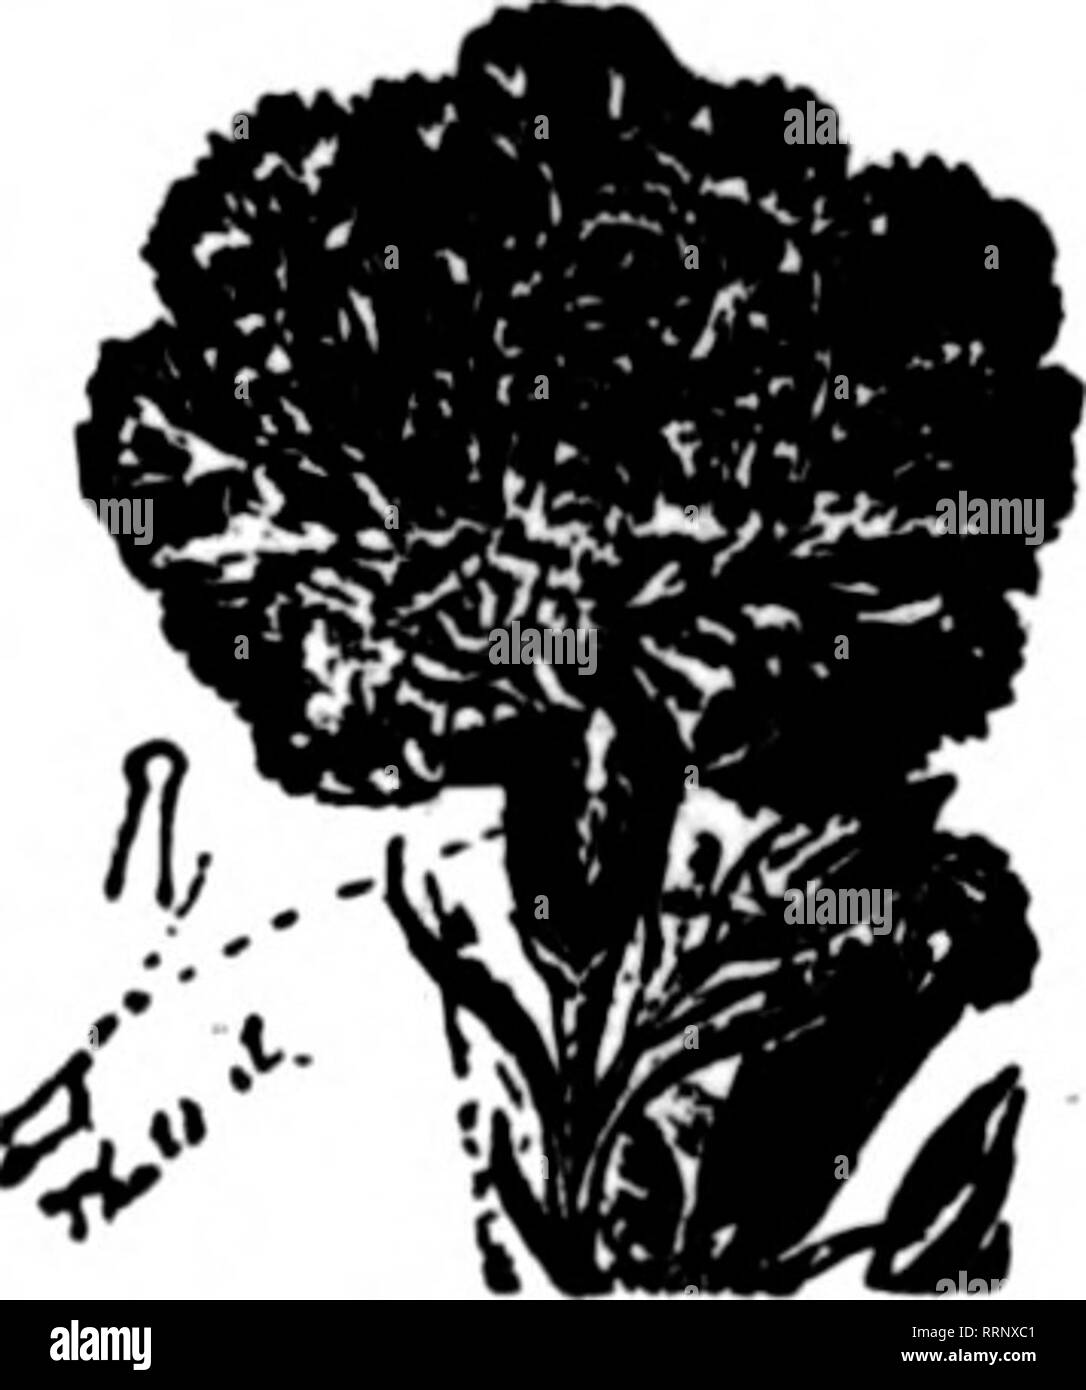 . Florists' review [microform]. Floriculture. In ever increasing demand. t aOlk« OH'* lk»»« tt«S^ Our Vine, Plant and Vegetable Manare, also Special Chrysanthemum Manare, are ever increasing: in public favor— they embody the practical experience of many years In all branches of Horticulture, pro- ducing vigorous, healthy and fruitful growth. Sold by LEADING AMERICAN SREDSMEN; freight paid on Quantities; liberal terms ' to retailers; write for our Special Offer to the American trade, etc., to sole makers, WM. THOMSON & SONS, Ltd., Clovenfords, Scotland r ^ie. xJfn^ecff'ct'tte JAaf THE iECO - Stock Image